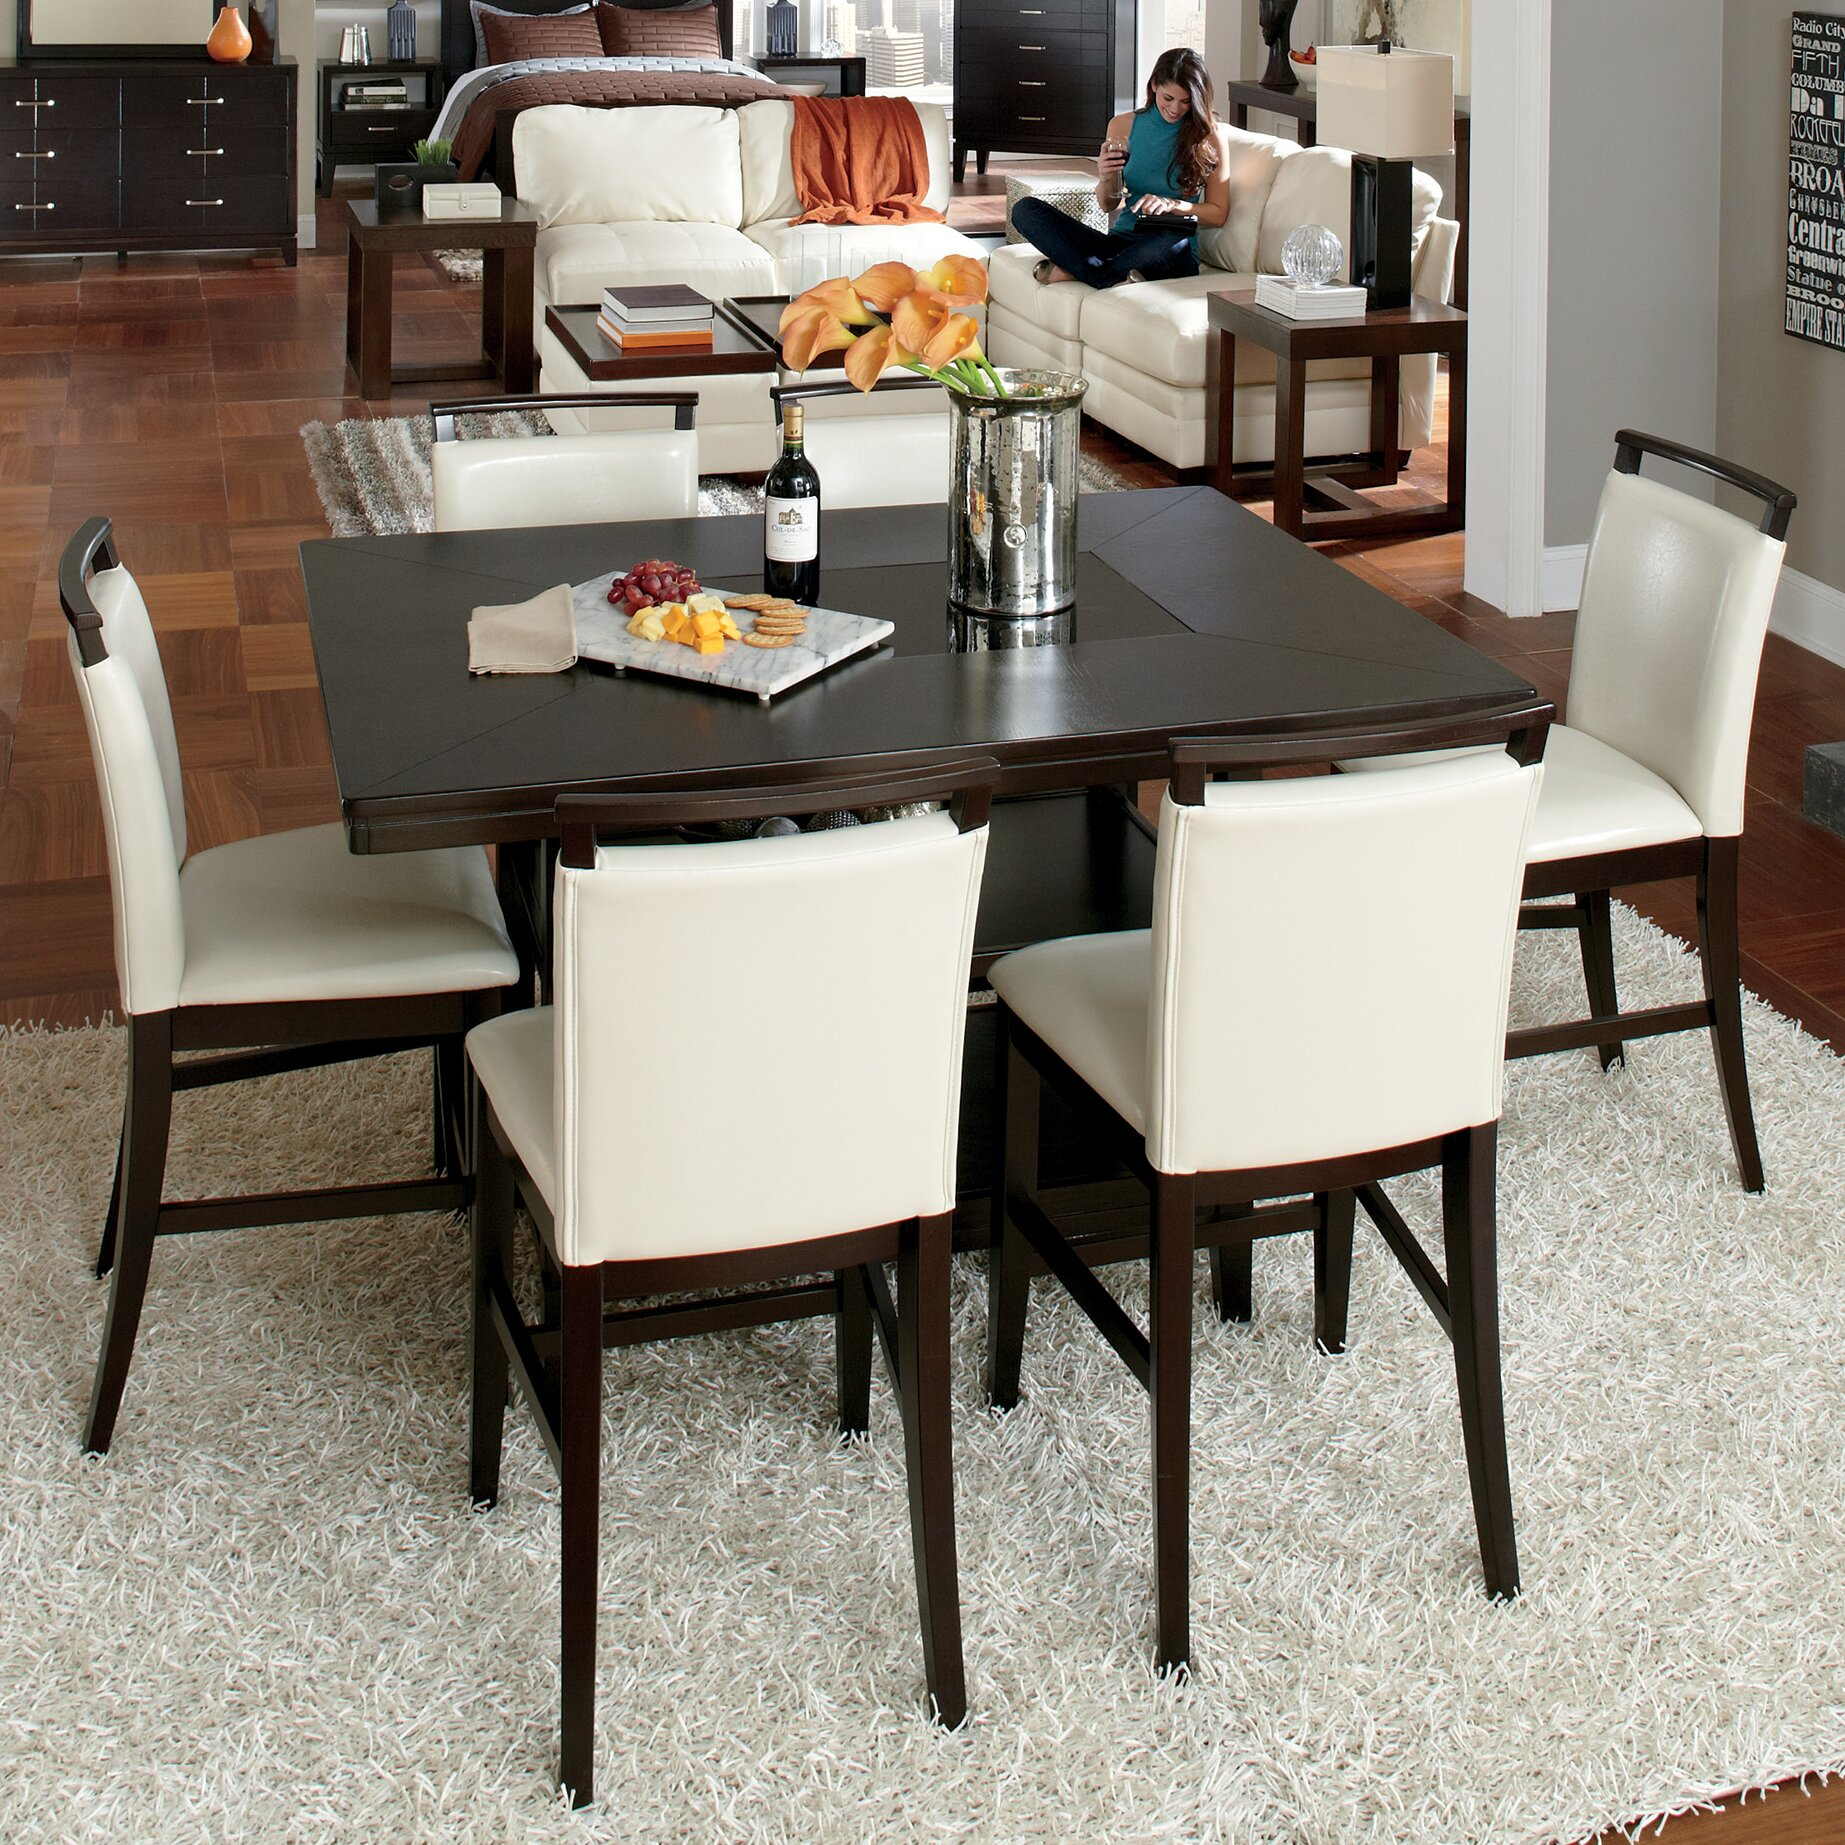 Signature Design by Ashley Trishelle Counter Height Dining  : Trishelle Counter Height Dining Table D550 32 from www.wayfair.com size 1845 x 1845 jpeg 1094kB